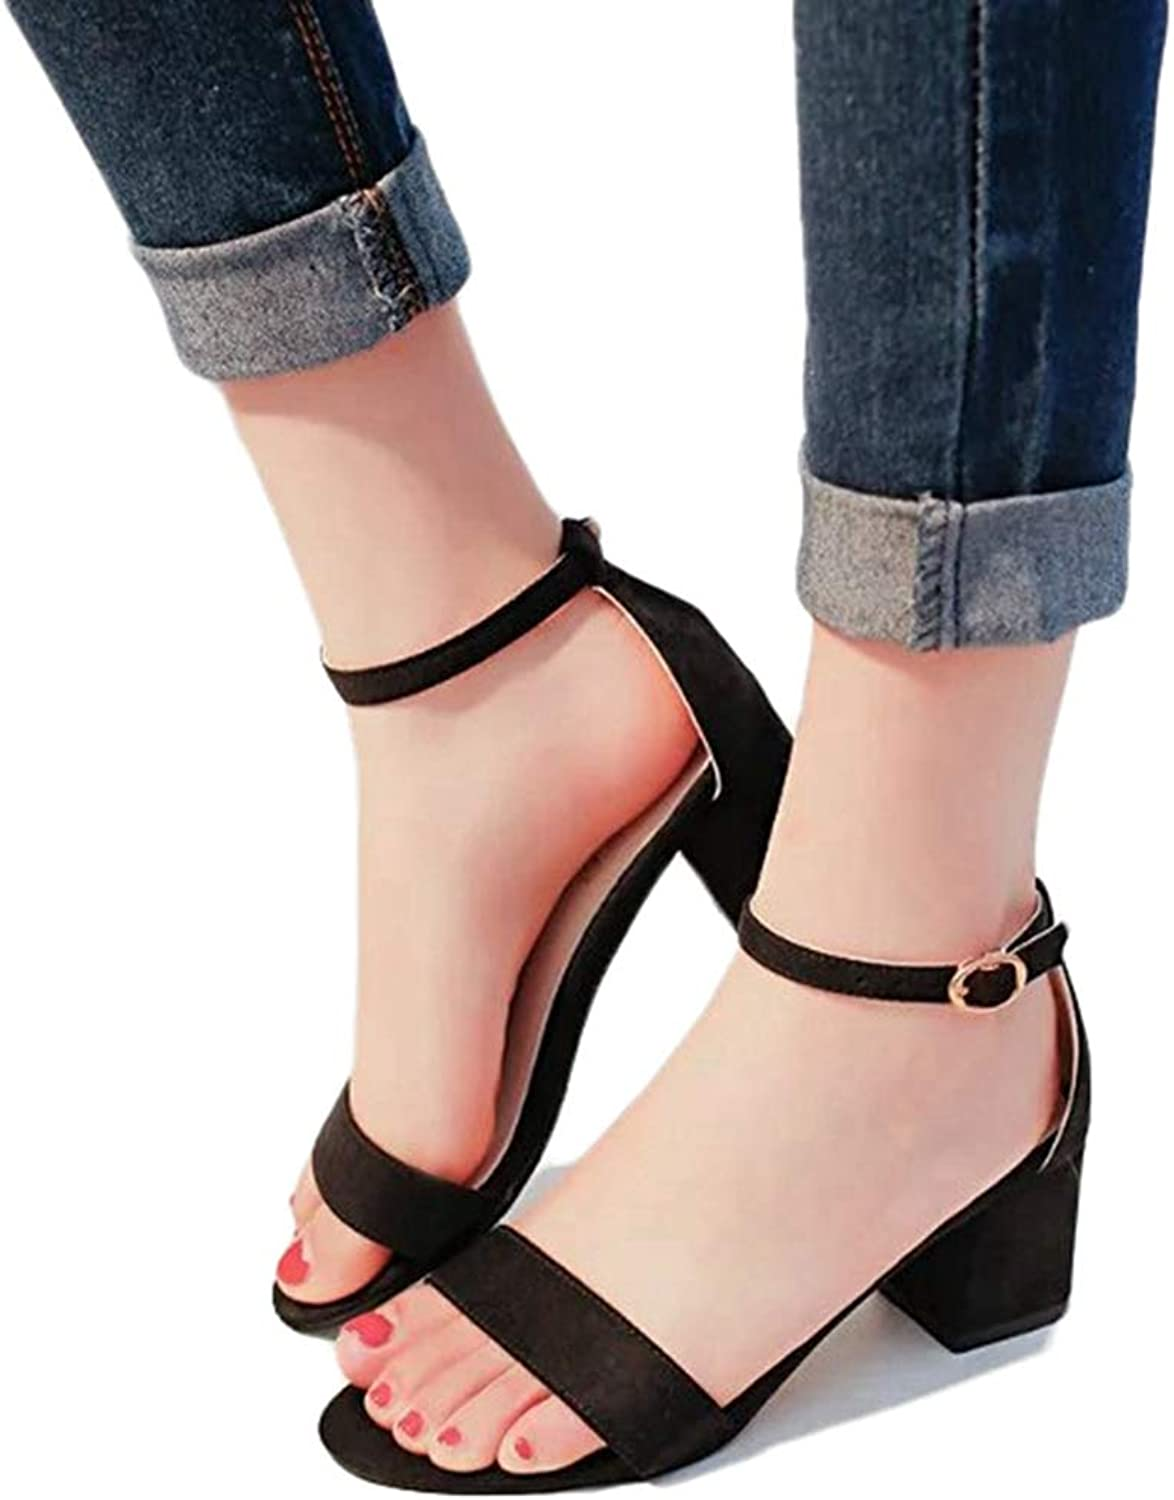 Kyle Walsh Pa Women Pumps Summer Sandals Woman Suede Round Open Toe Low High Heels